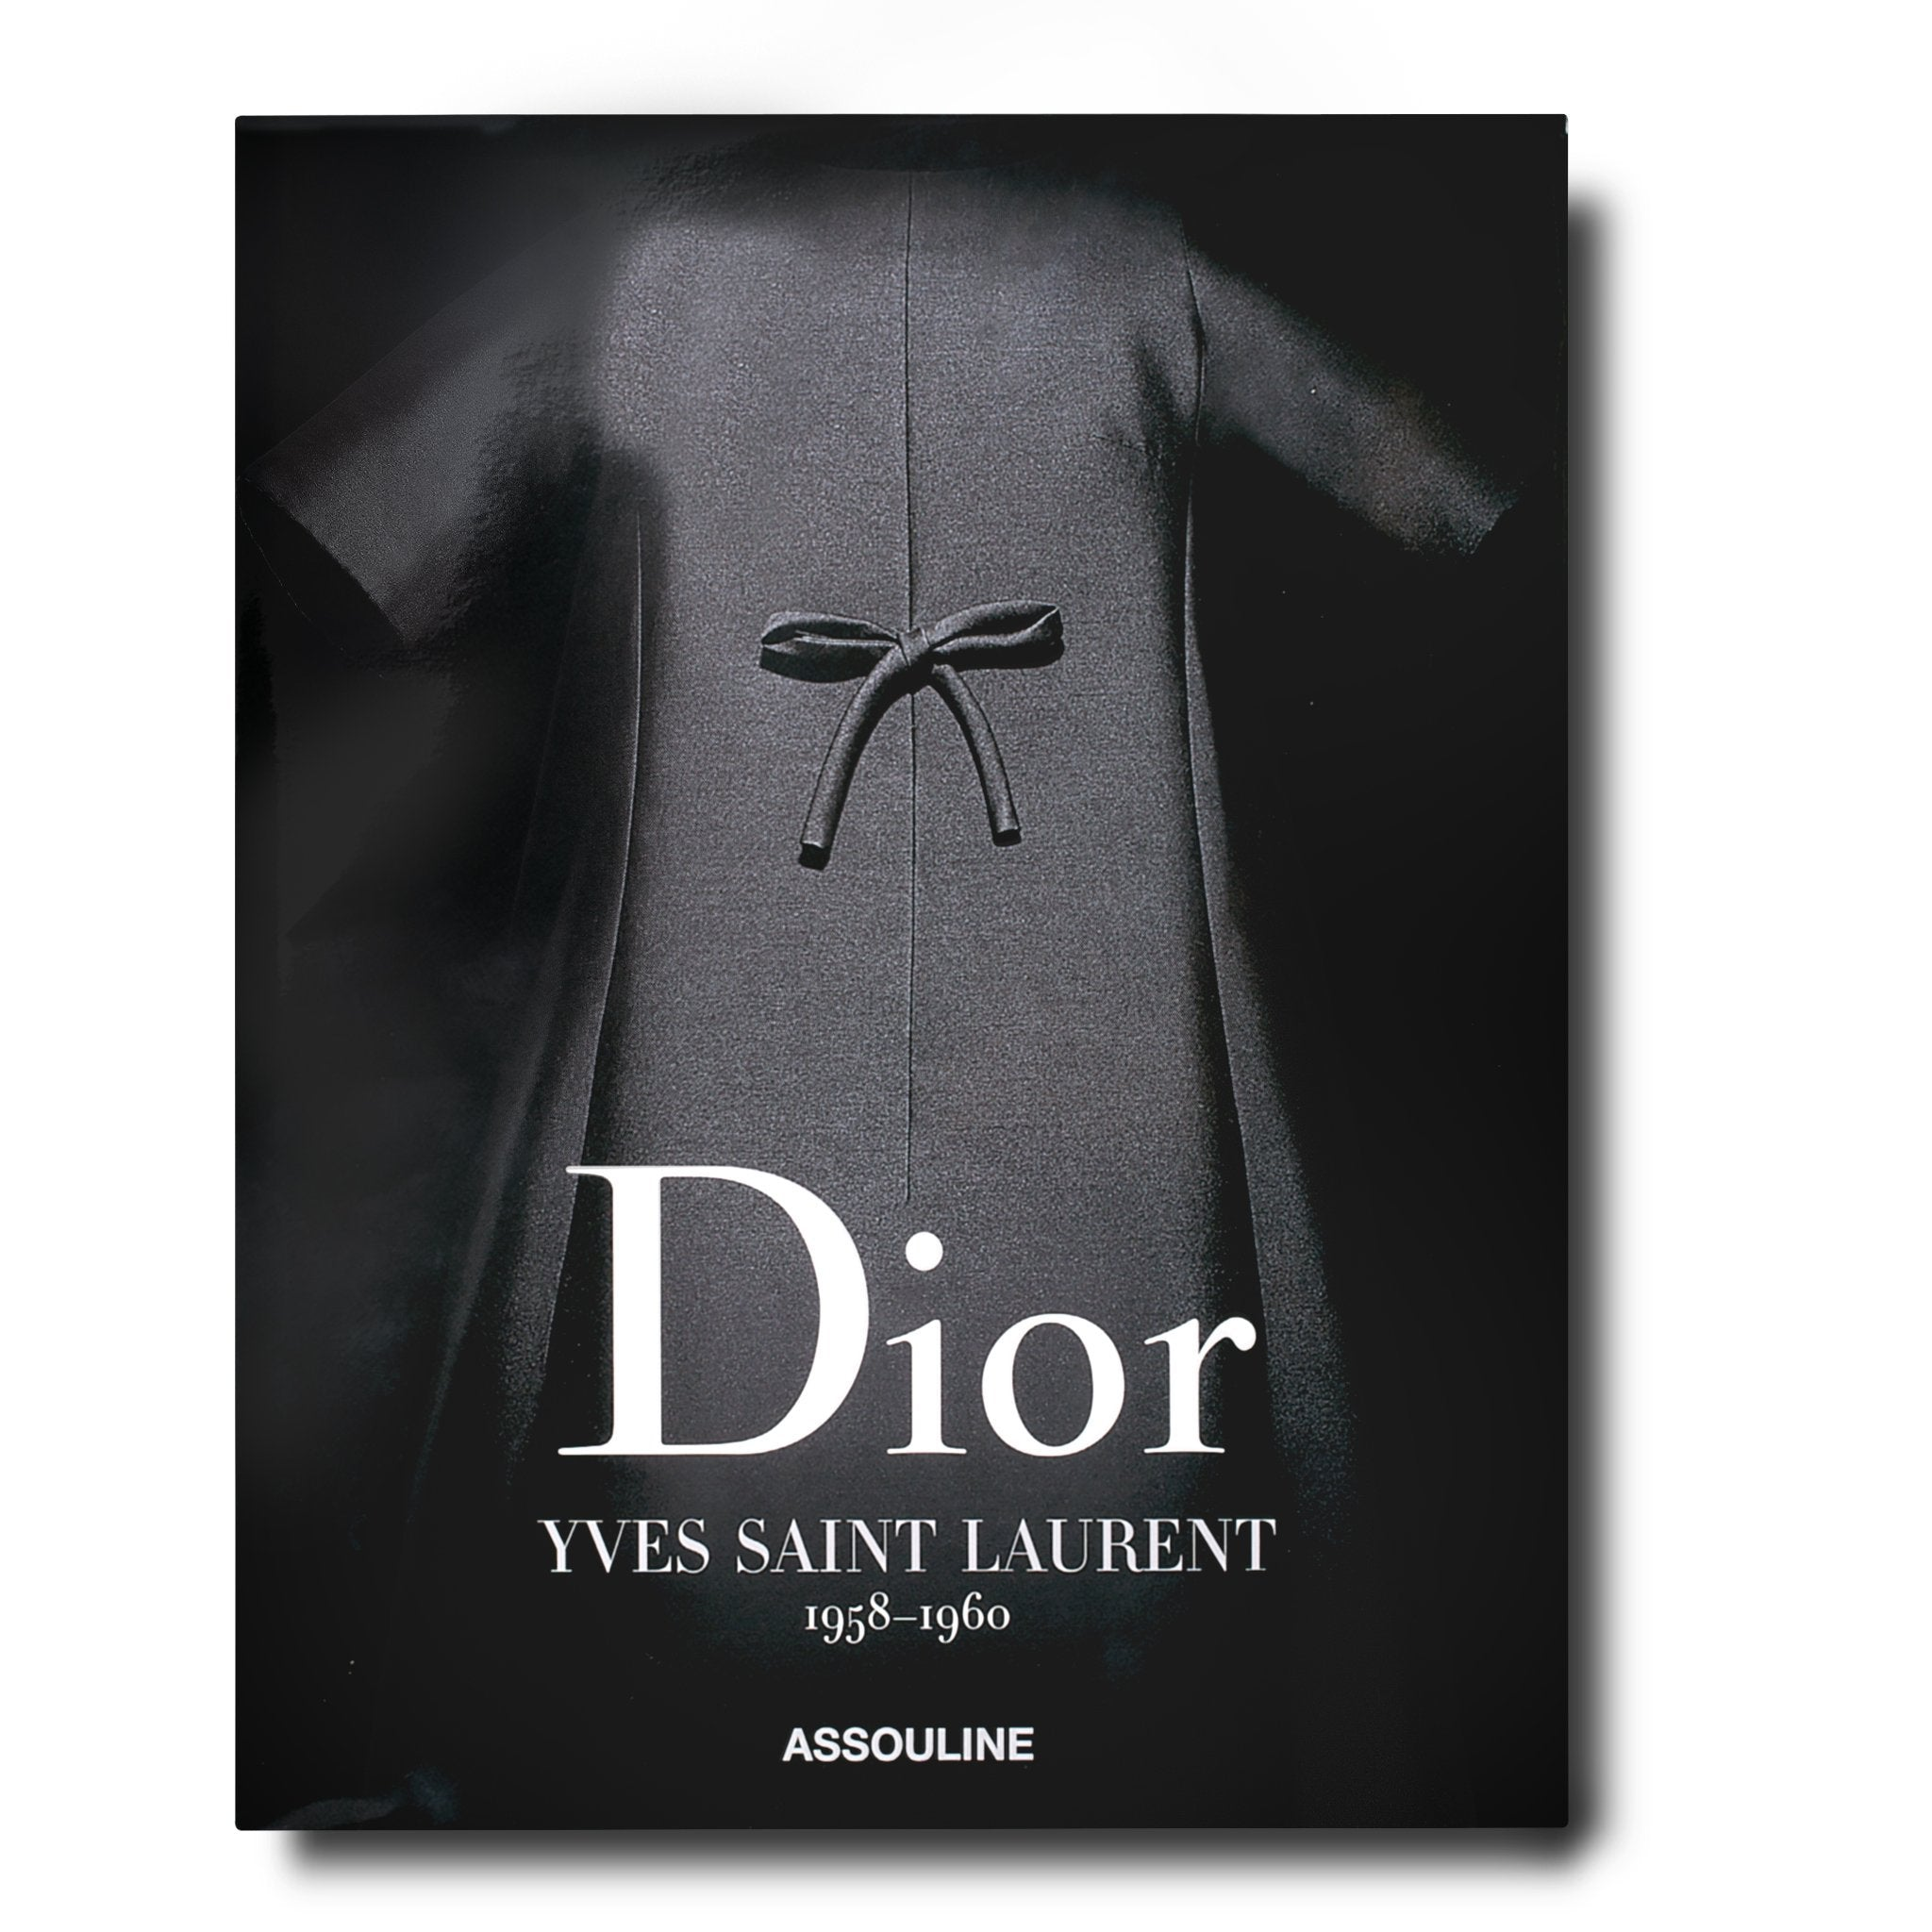 Dior by Yves Saint Laurent